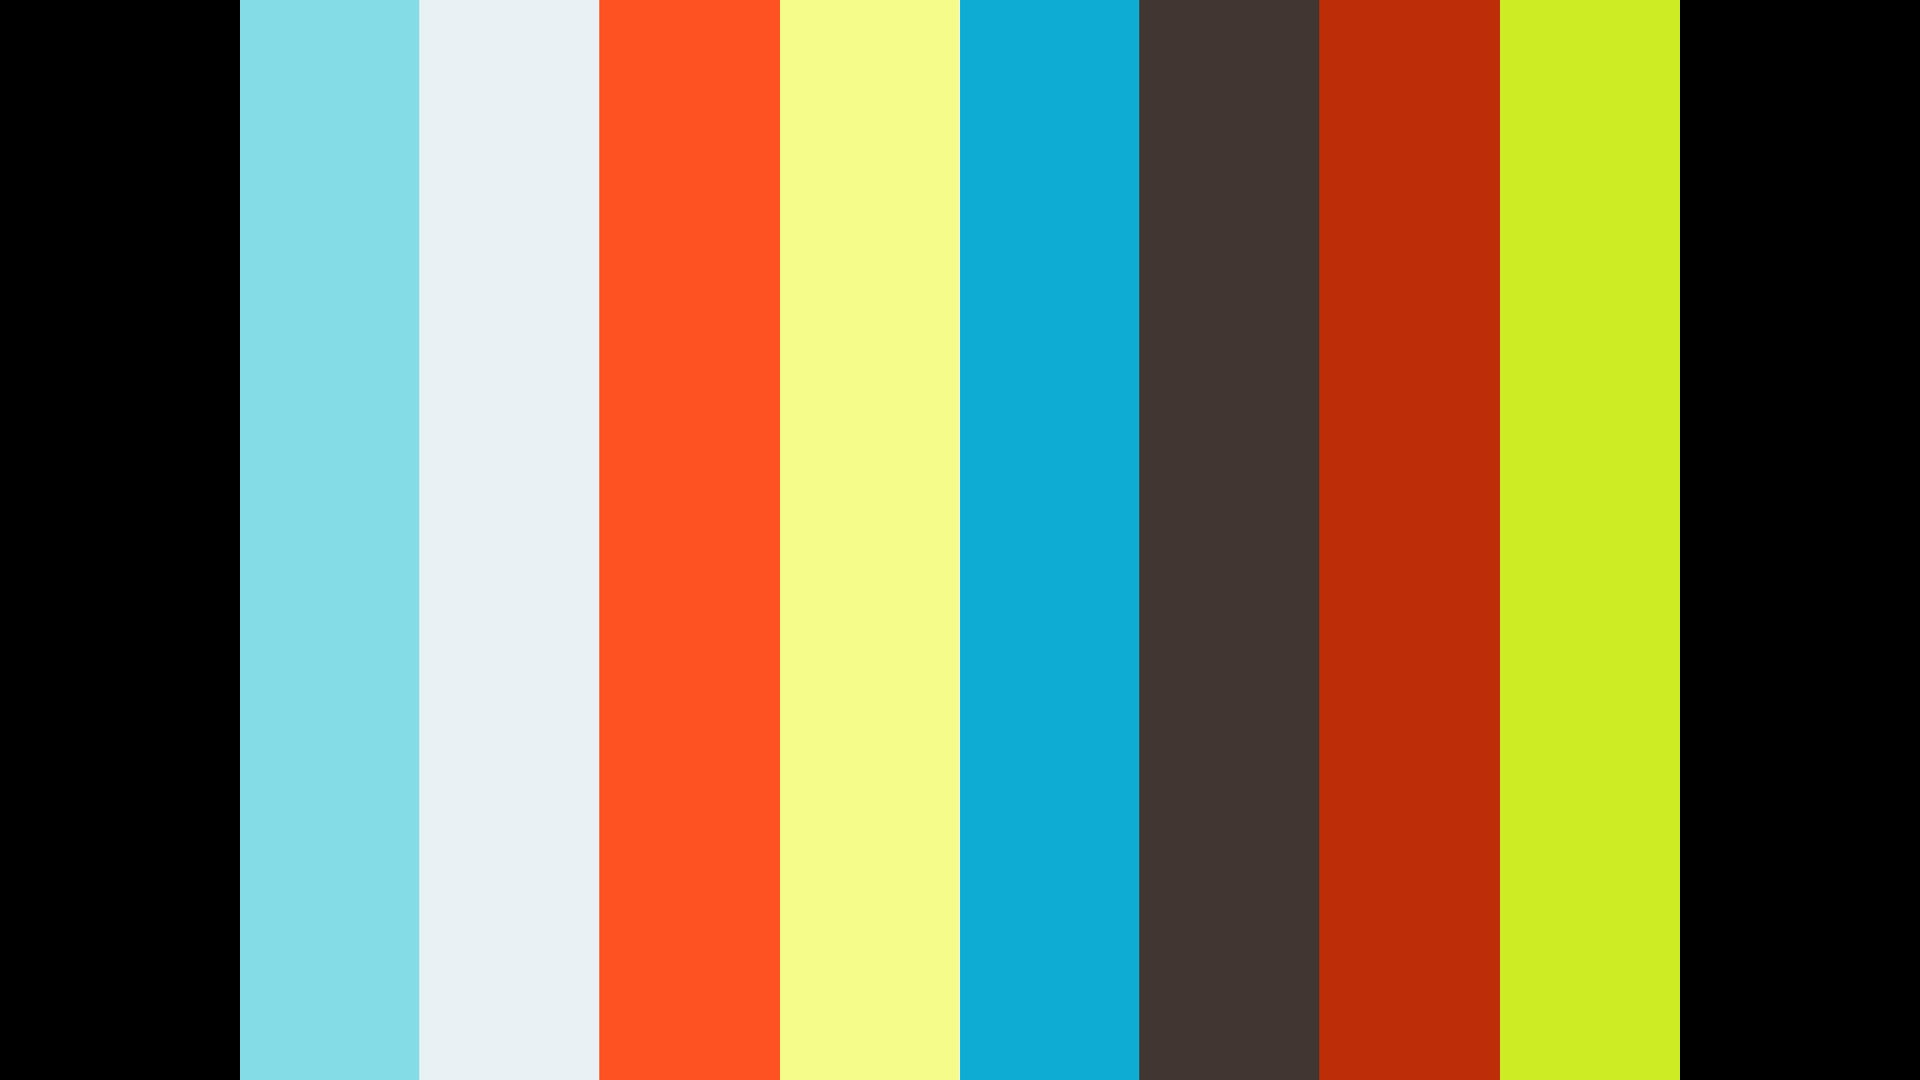 September 8, 2019 - Masterpiece in Progress, Part 1 - Message (HD)